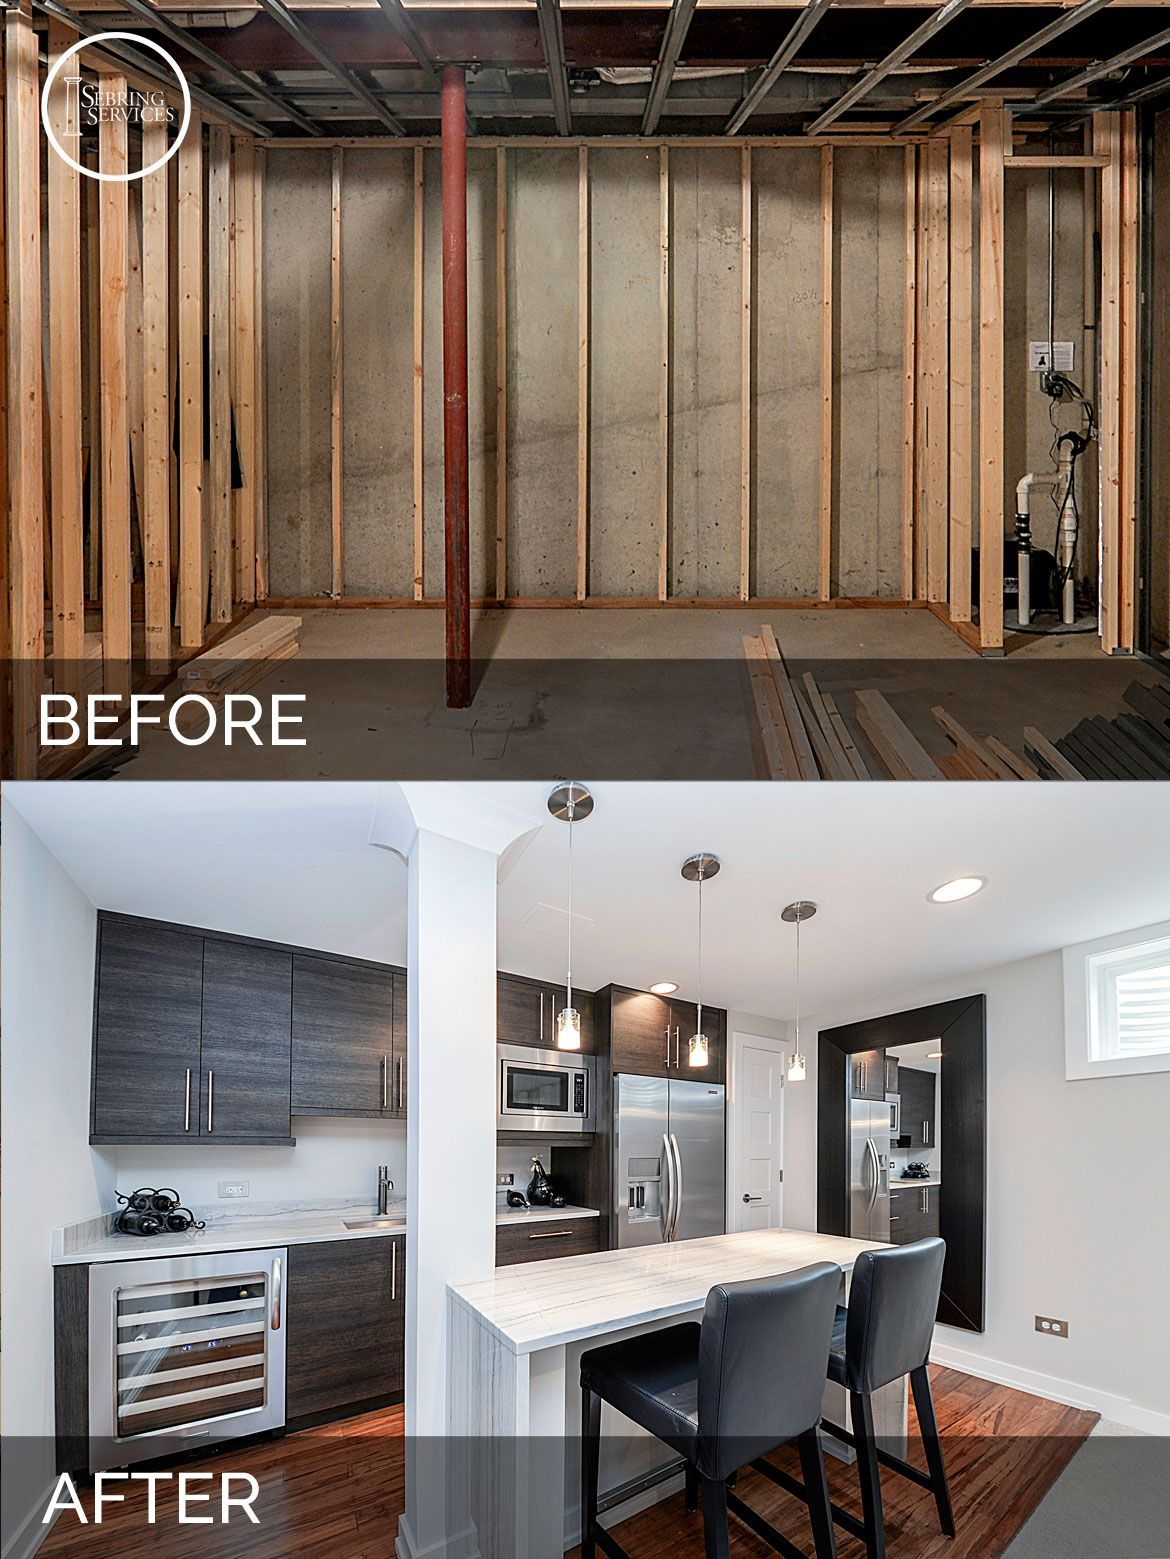 Before And After Diy Kitchen Renovation: Doug & Natalie's Basement Before & After Pictures In 2019